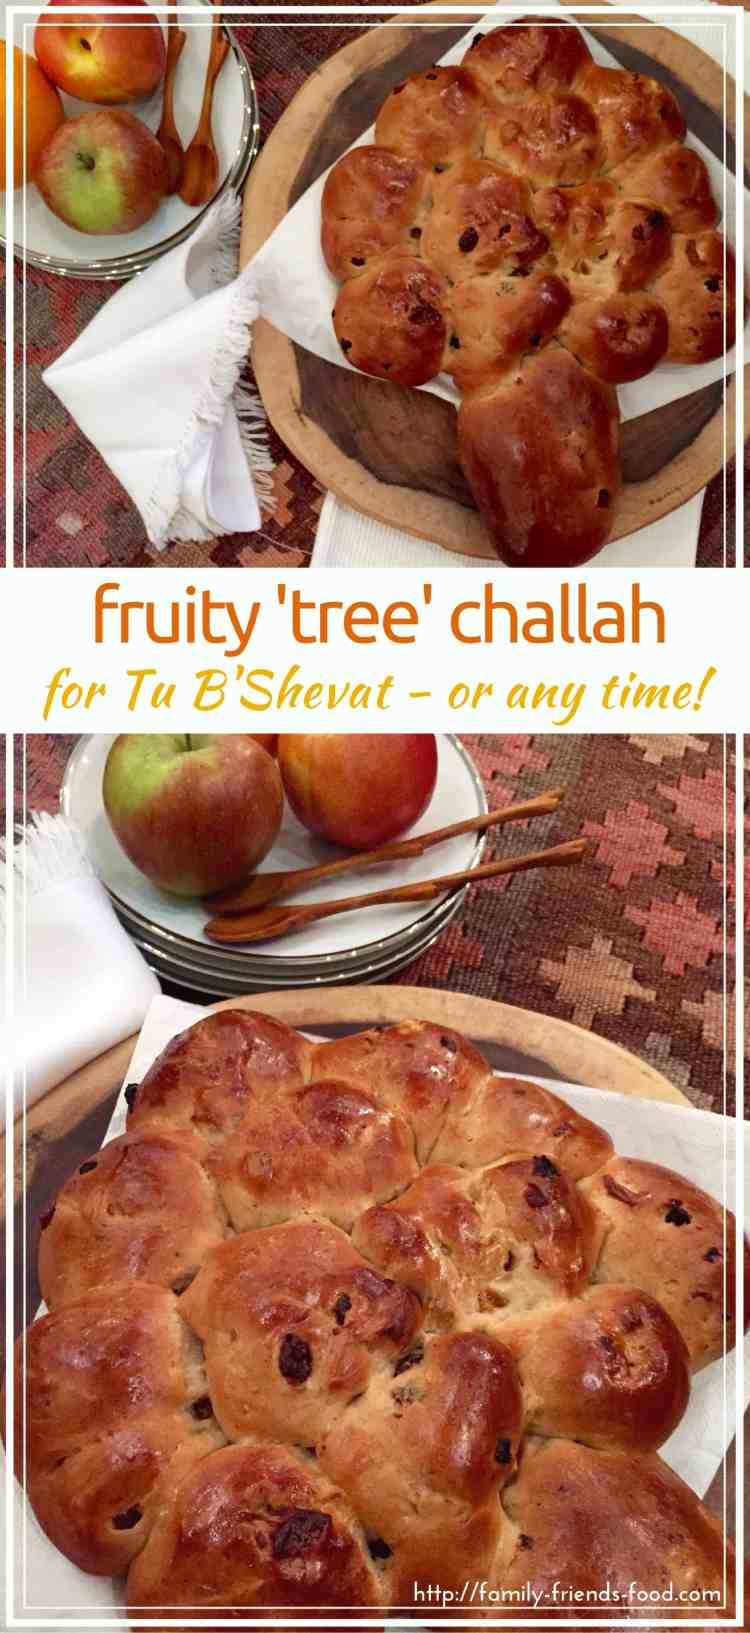 Fluffy, soft, delicious fruity challah, studded with apricot, apple, cherry, orange peel & more! Make tree shaped for Tu B'Shevat or enjoy a loaf anytime.